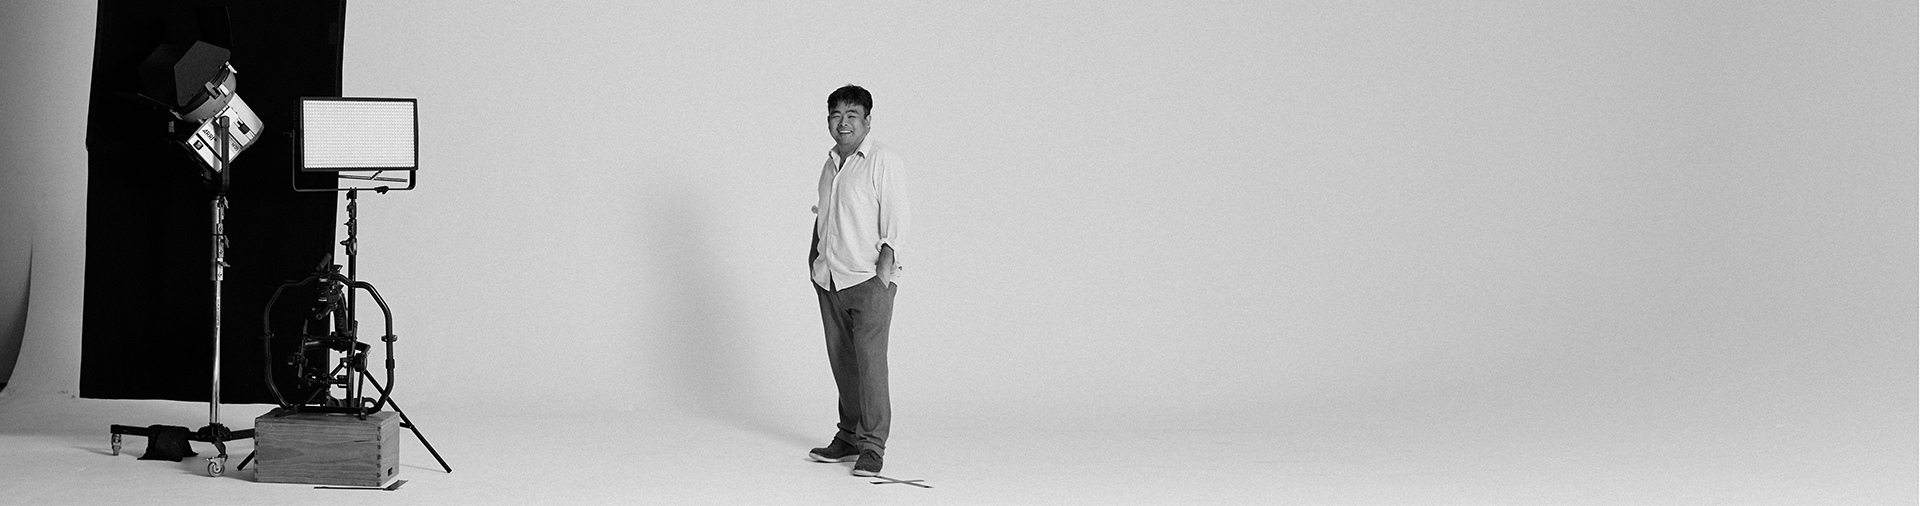 black-and-white-portrait-of-writer-director-and-cinematographer-david-tran-on-awhite-background-with-cinema-camera-and-lighting